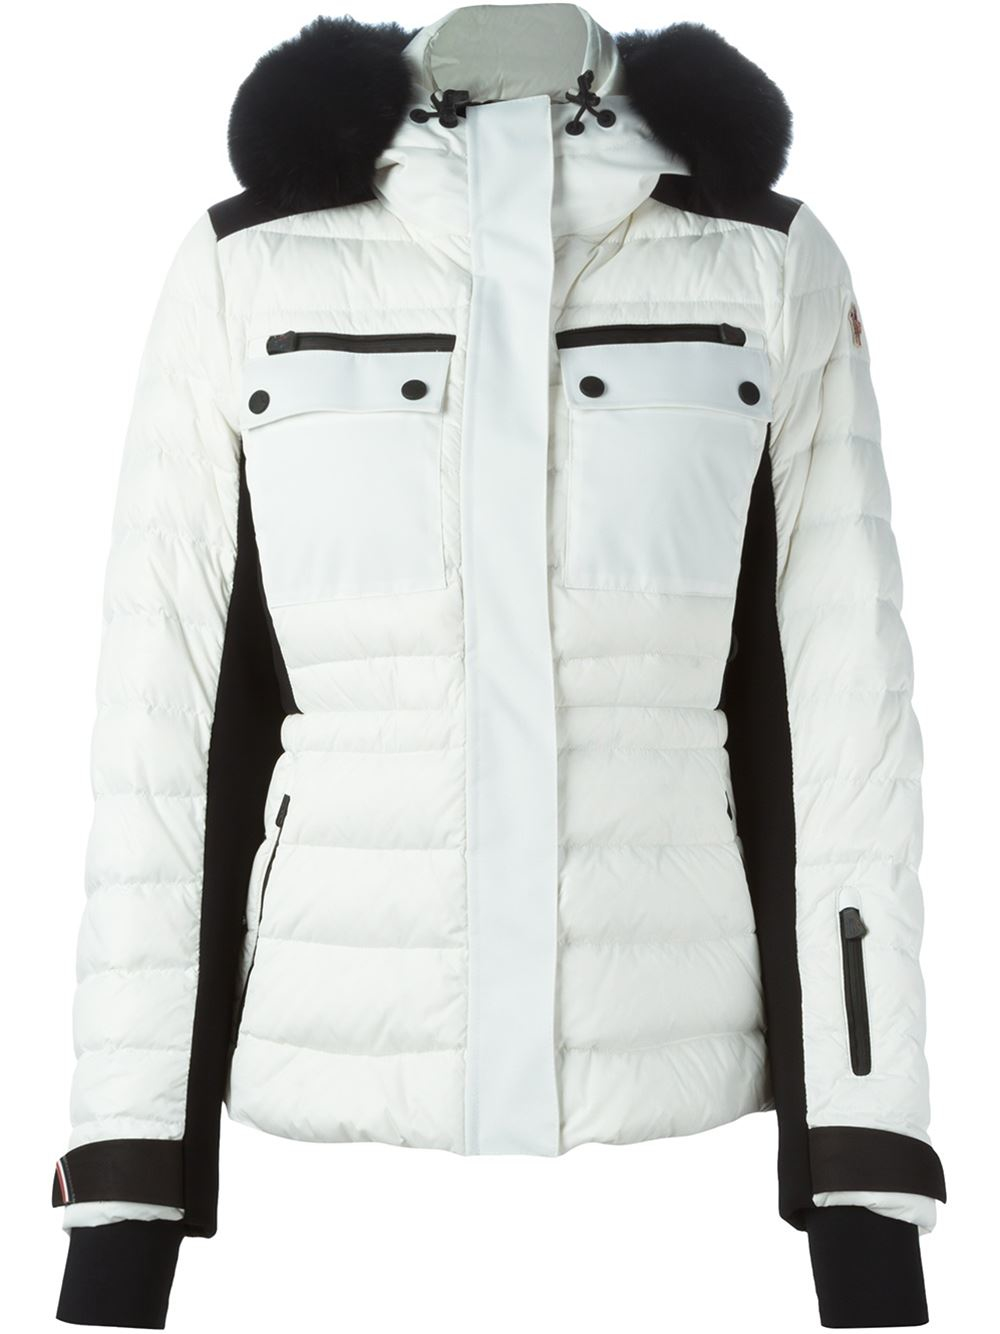 moncler black and white jacket